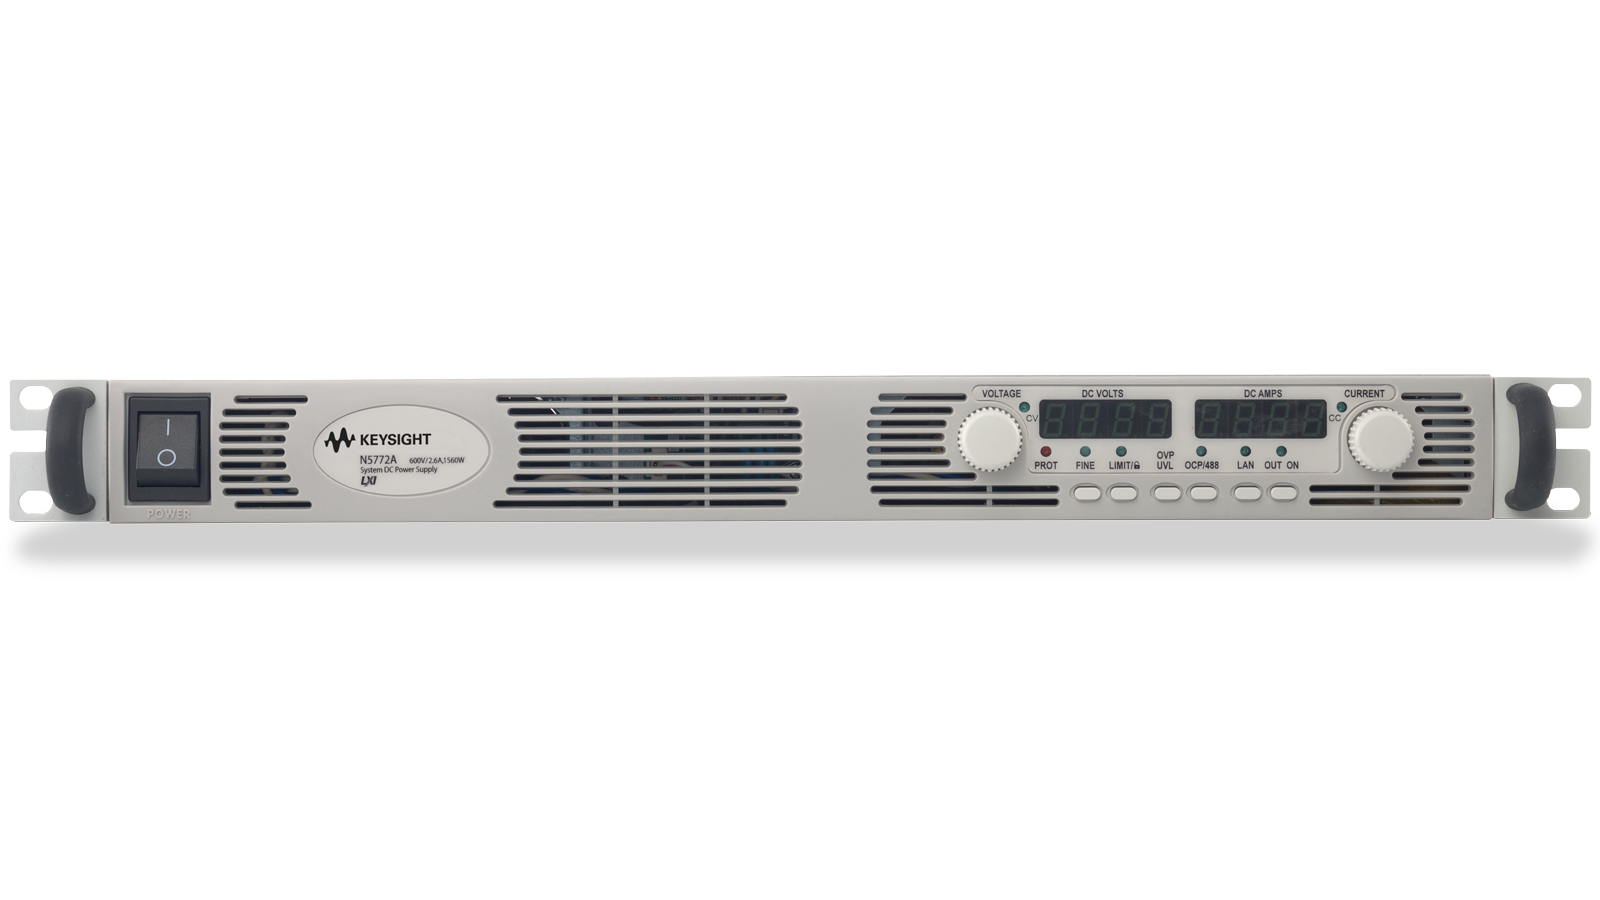 N5700 Series Programmable Supply Front Panel